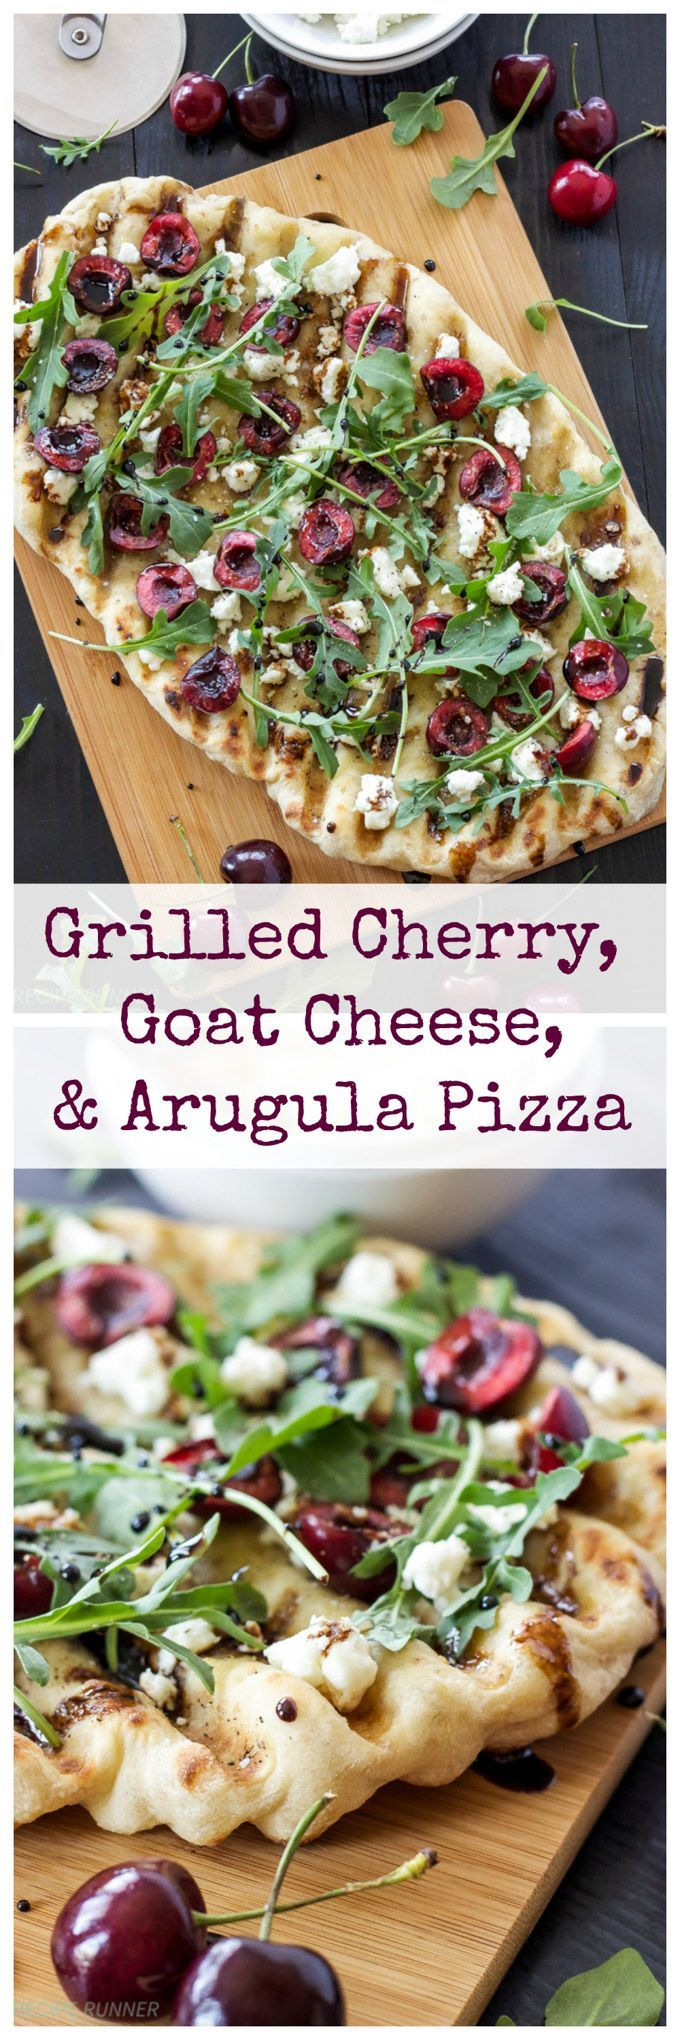 Grilled Cherry, Goat Cheese, and Arugula Pizza   Grilled pizza is perfect for summer and this cherry  and goat cheese combination is delicious!